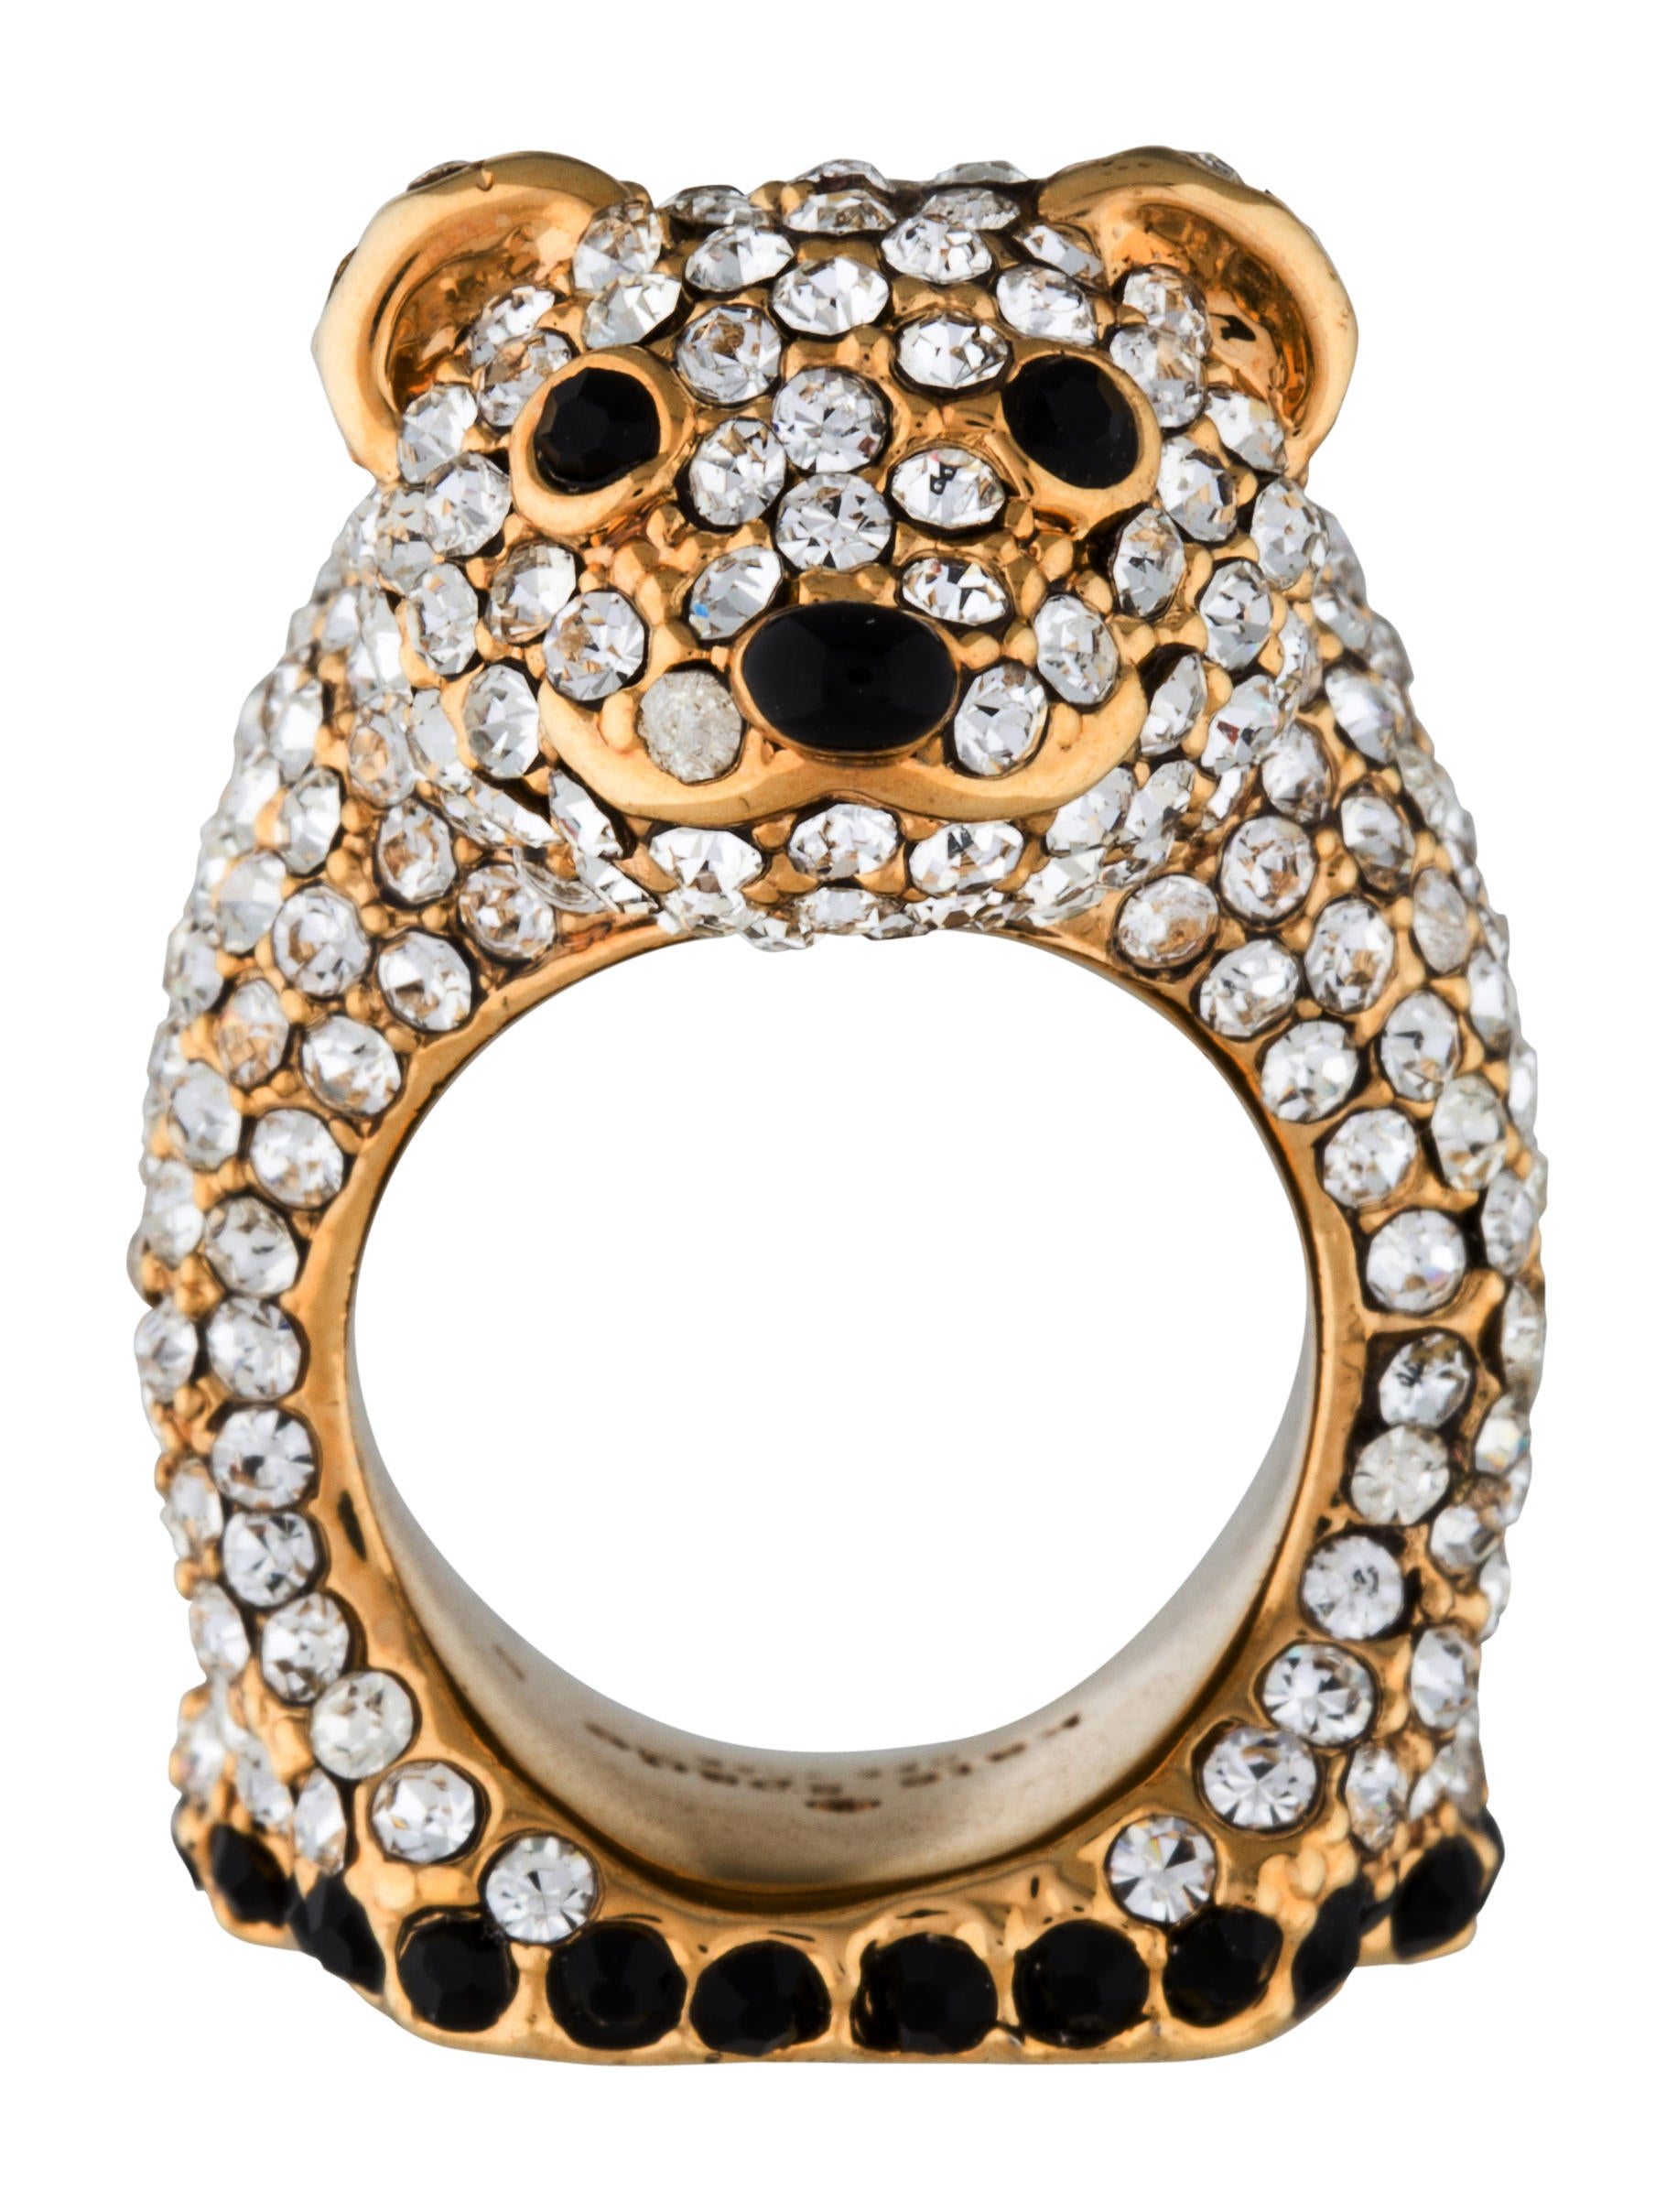 hunt hunter brown call watch of the diamond wild kill polar bear